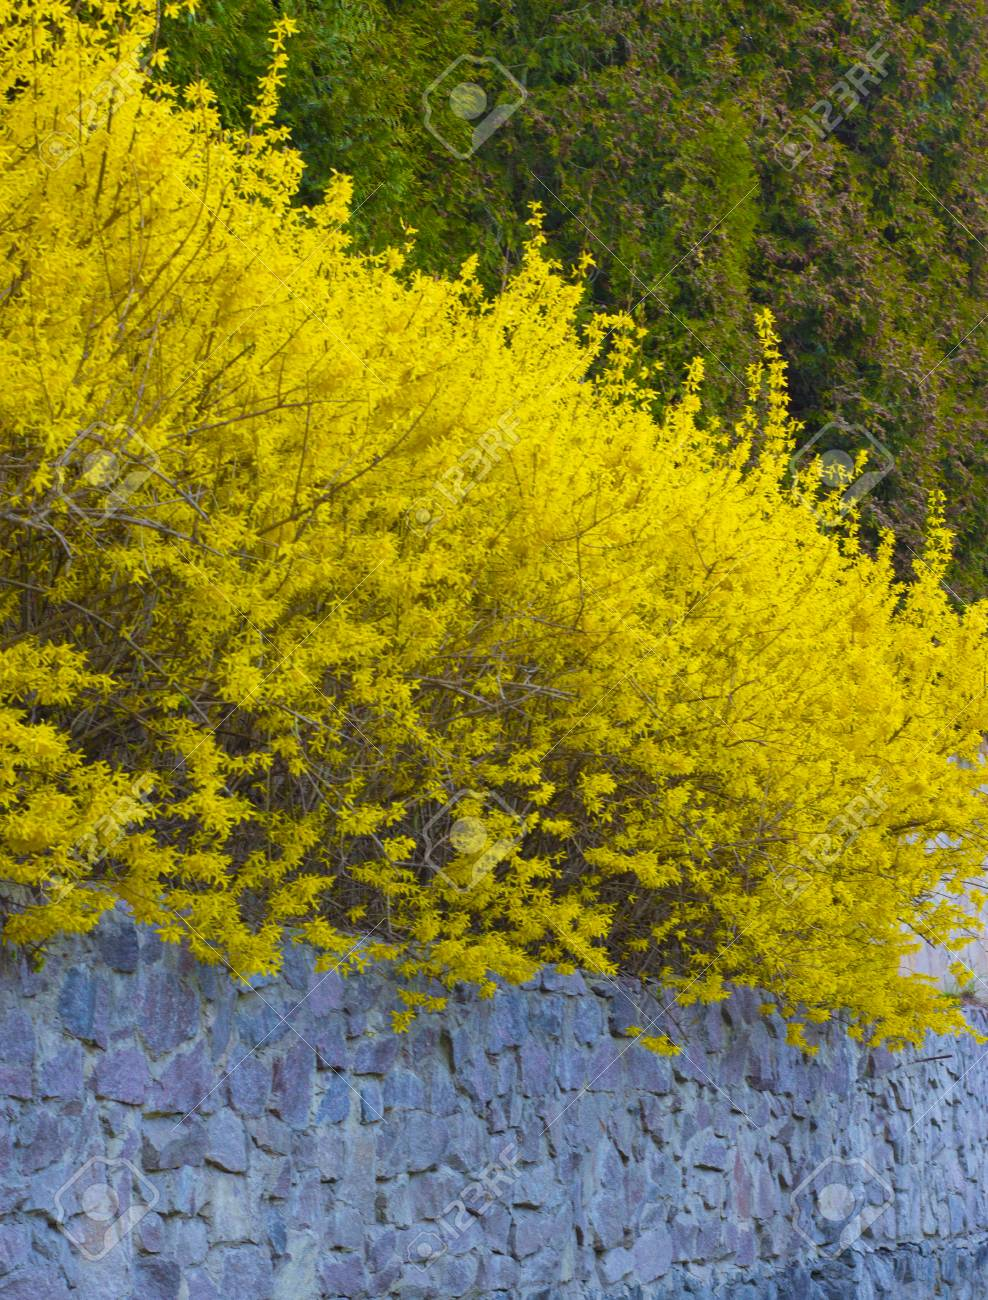 Forsythia A Bush Blooming In Early Spring Bright Yellow Stock